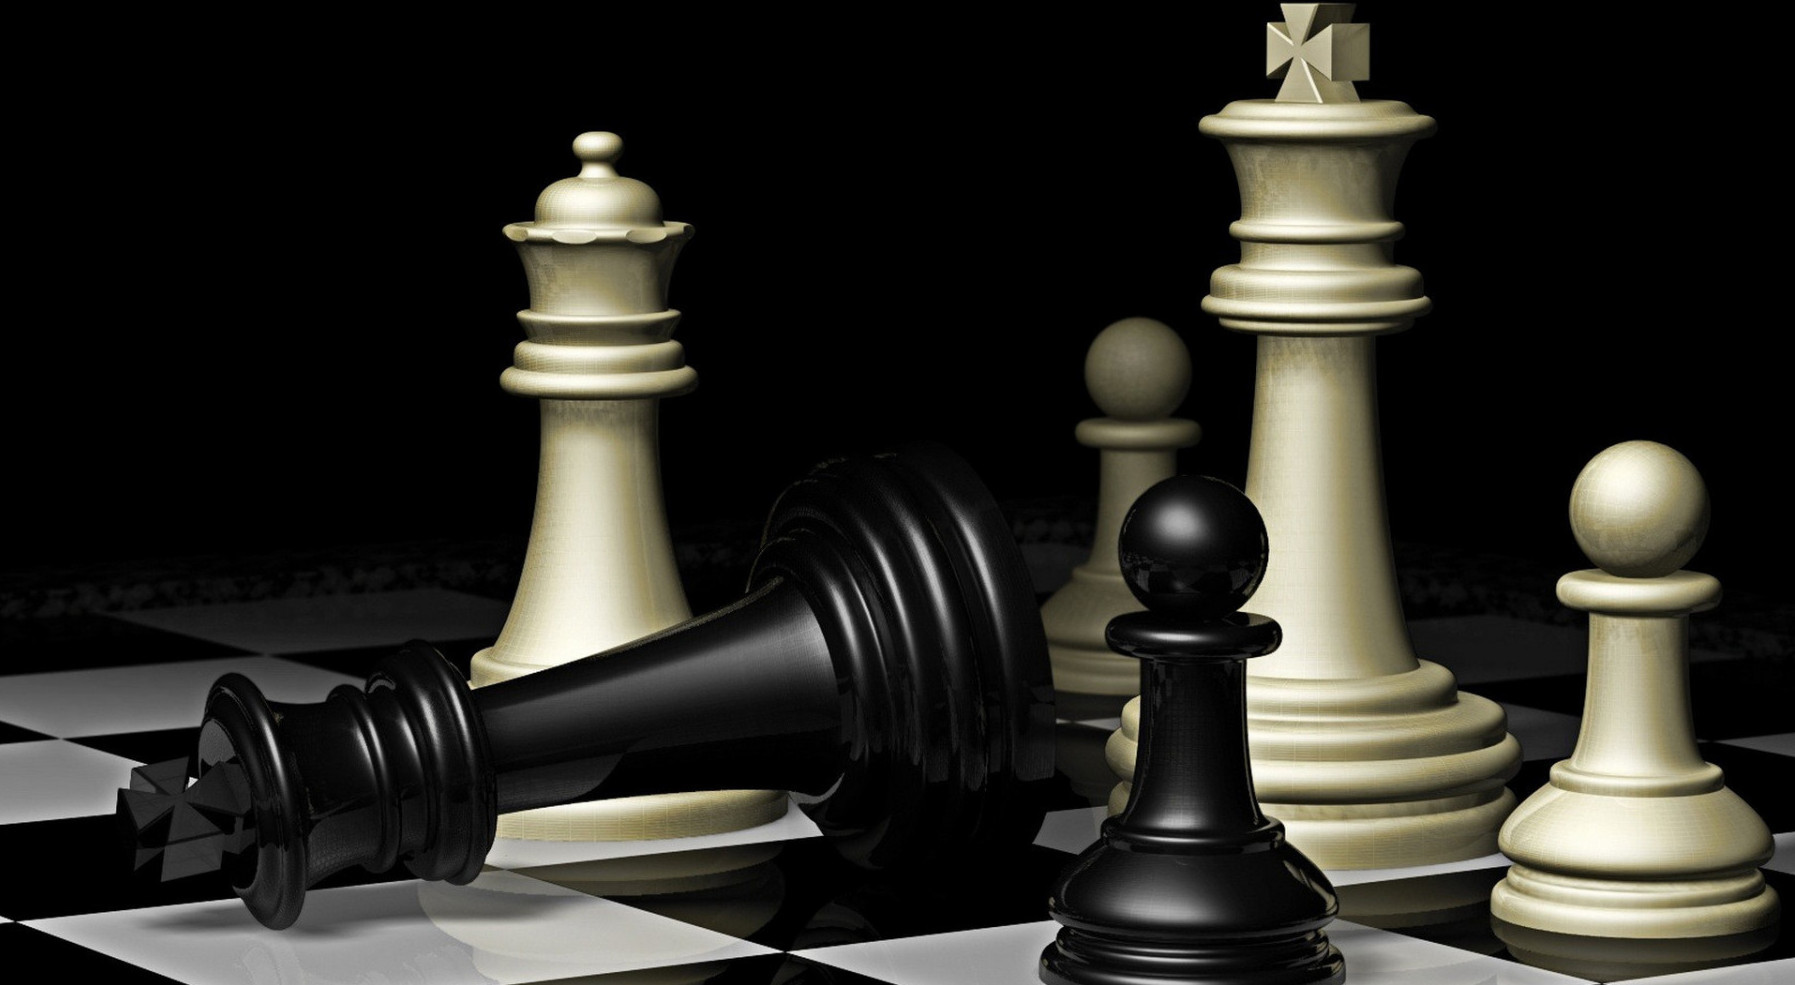 chess-king-checkmate-victory-3d